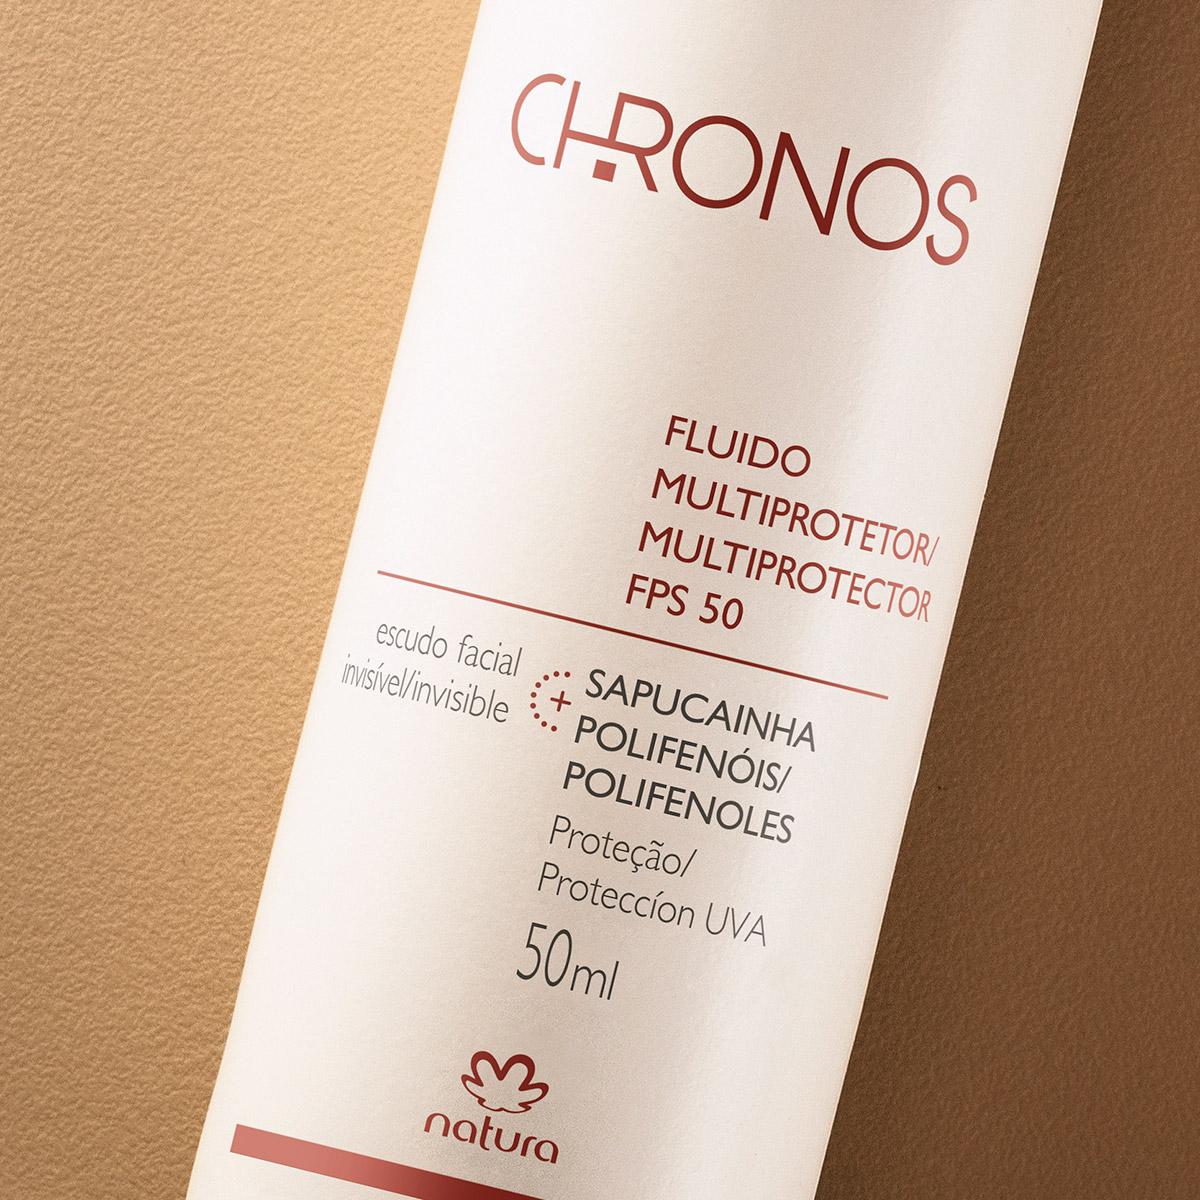 Fluido Multiprotetor Chronos FPS 50 - 50ml - 68542